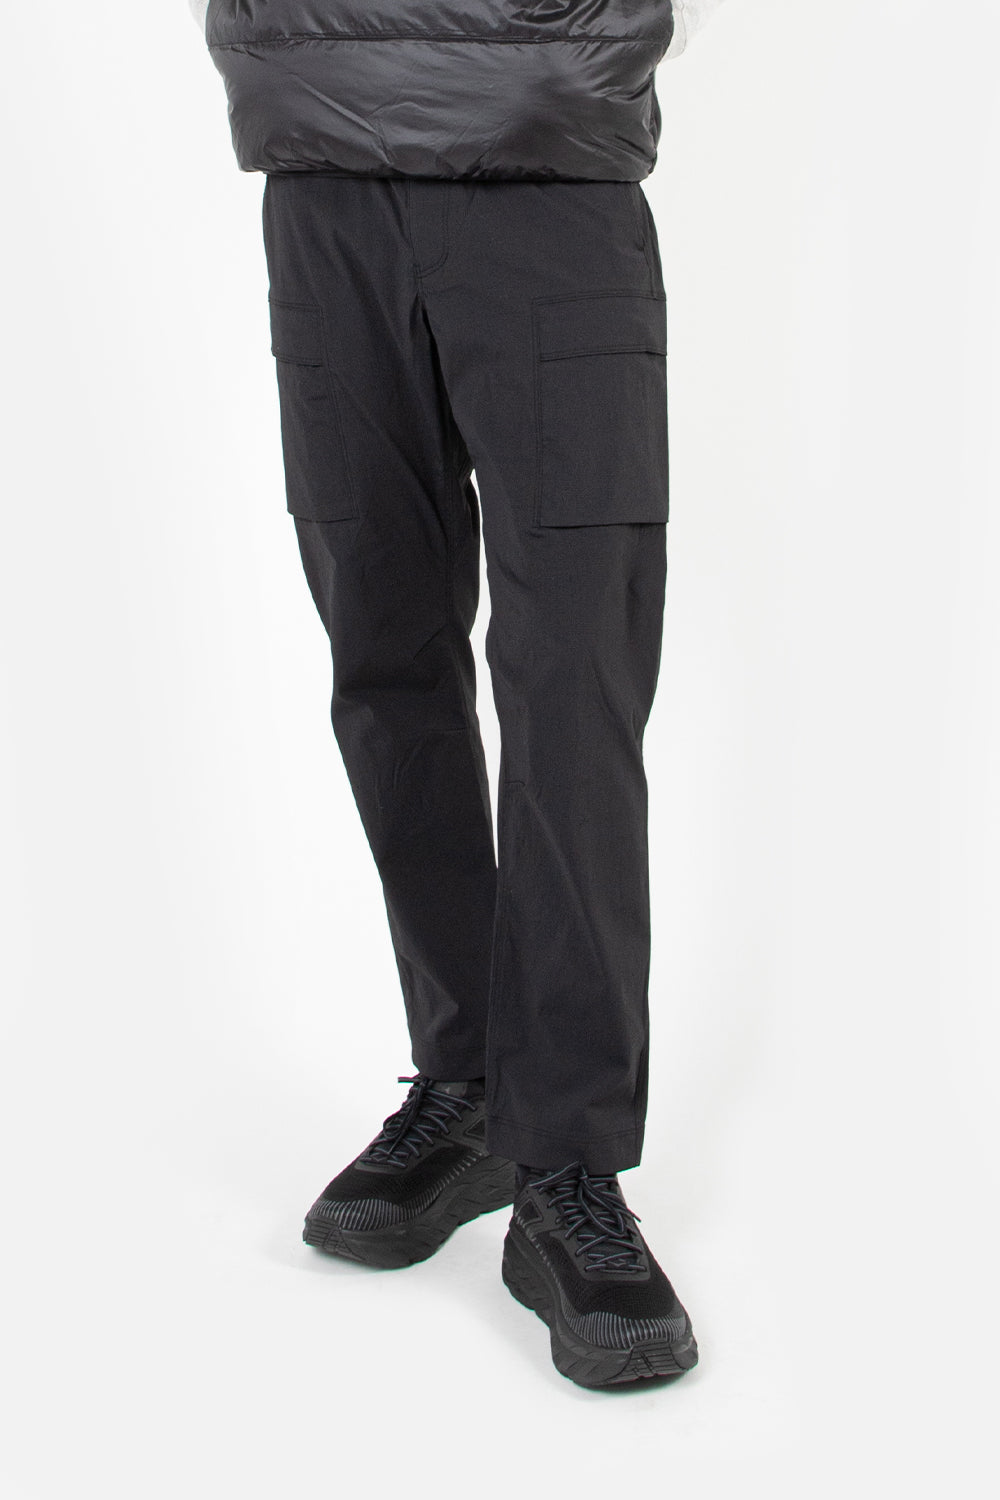 goldwin cordura stretch cargo black pant